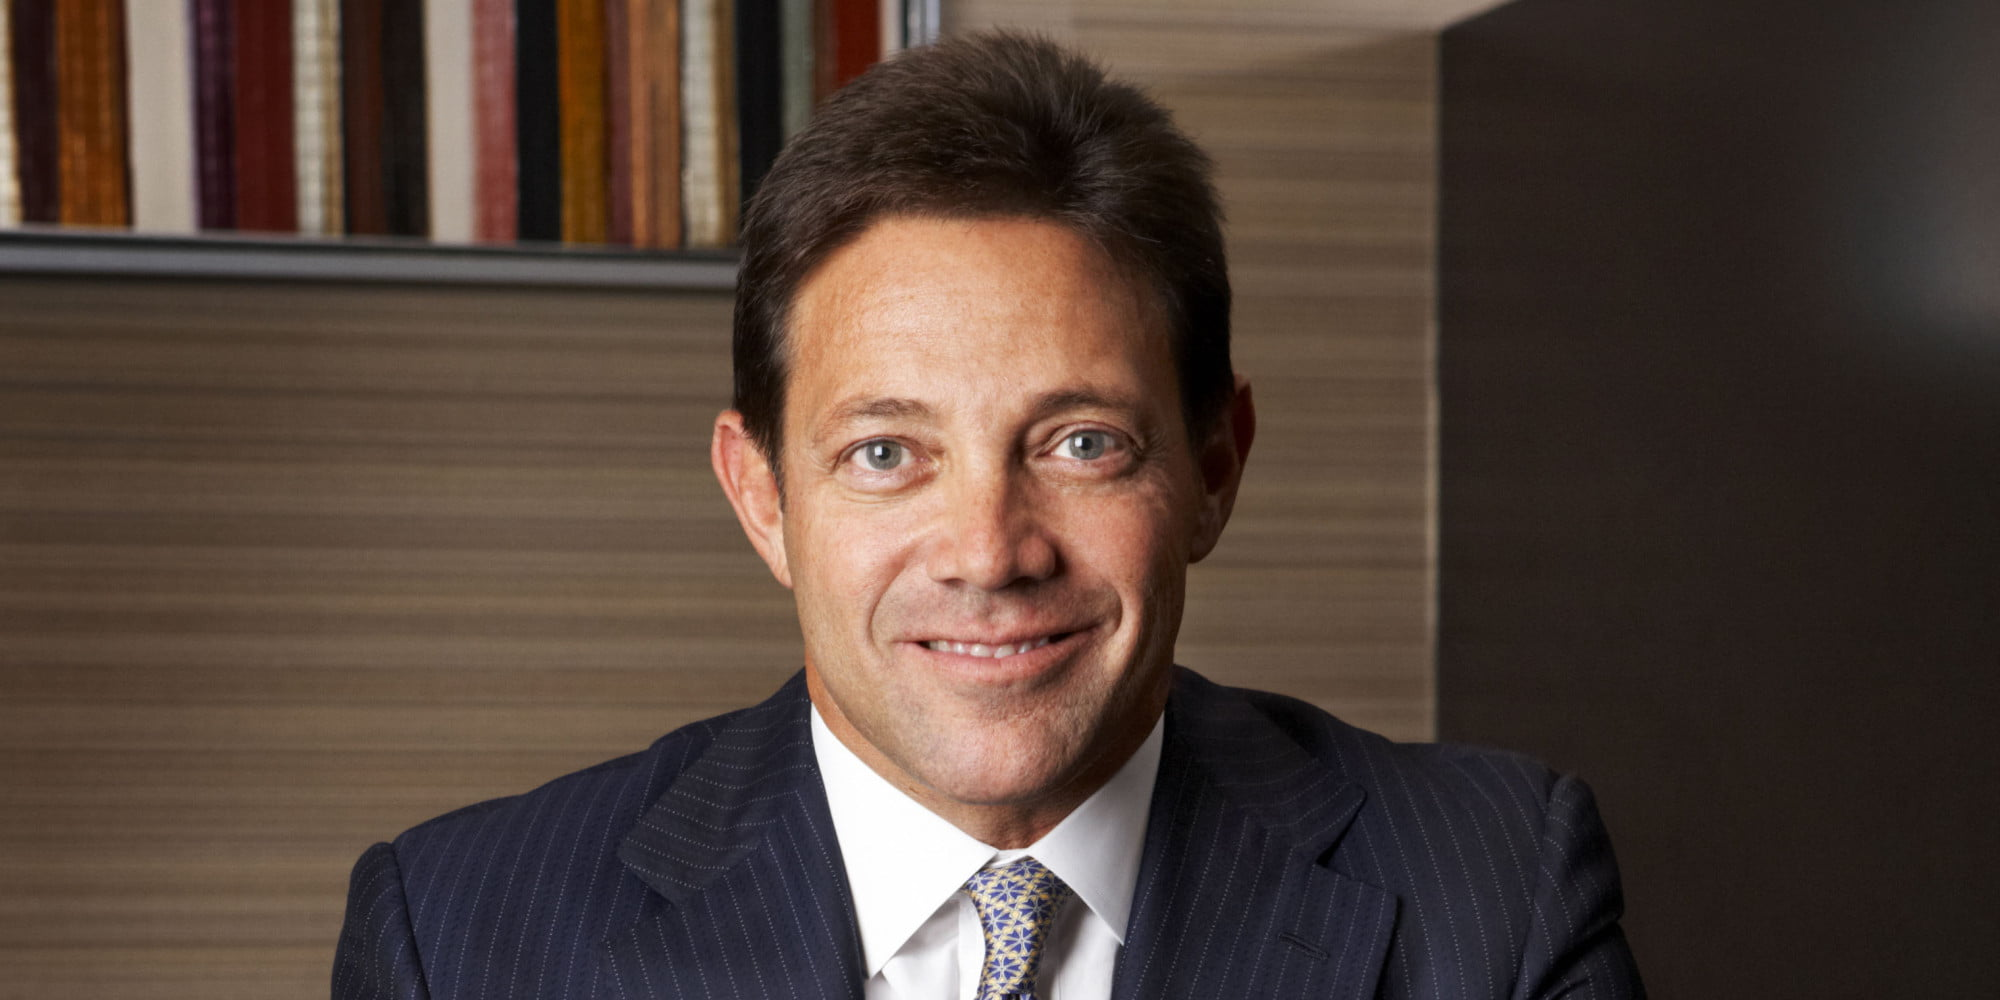 Jordan Belfort earned a  million dollar salary, leaving the net worth at -100 million in 2017